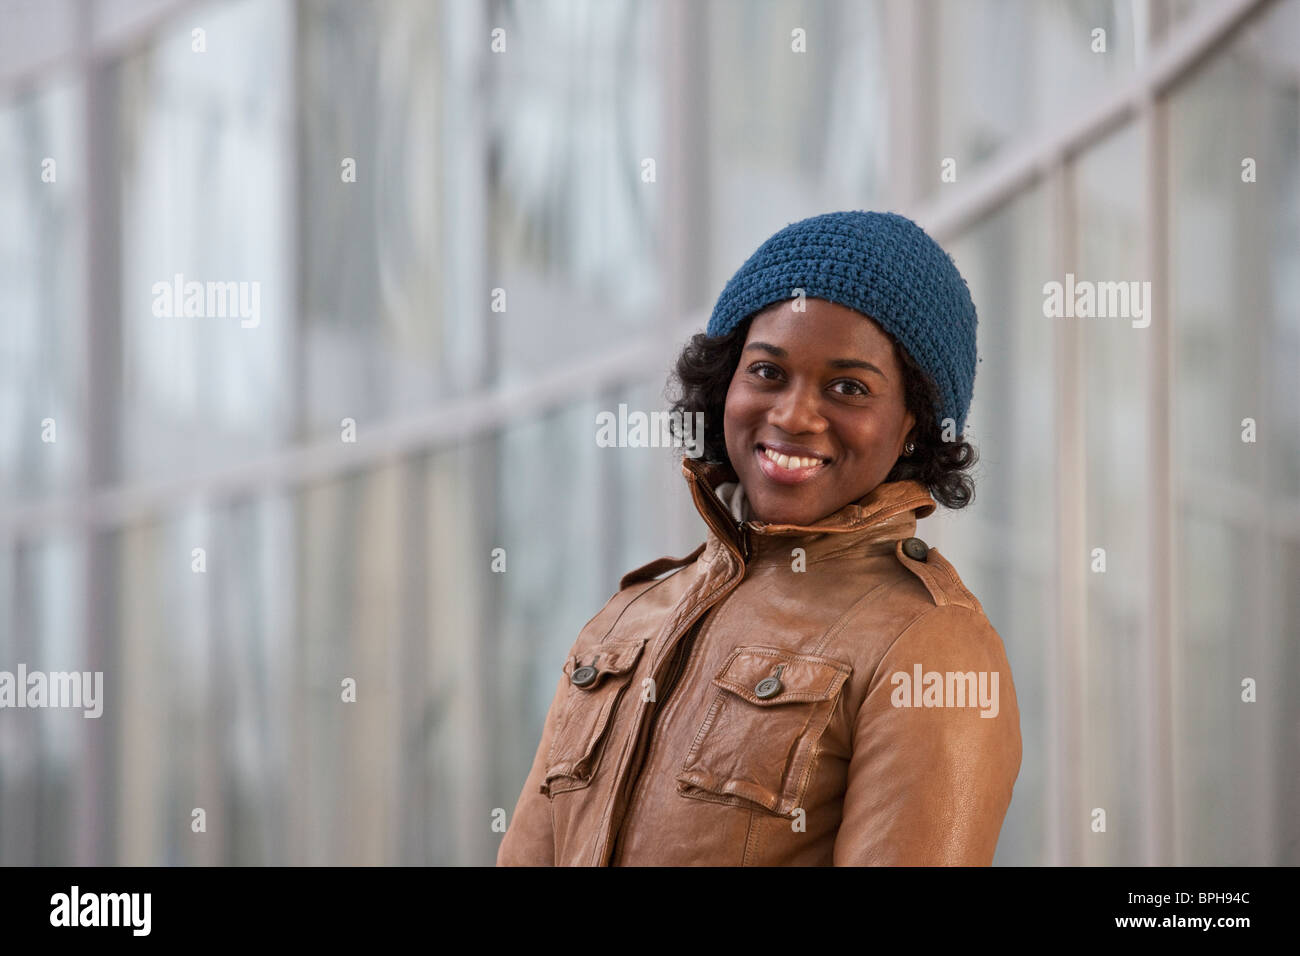 Portrait of a Jamaican woman smiling - Stock Image